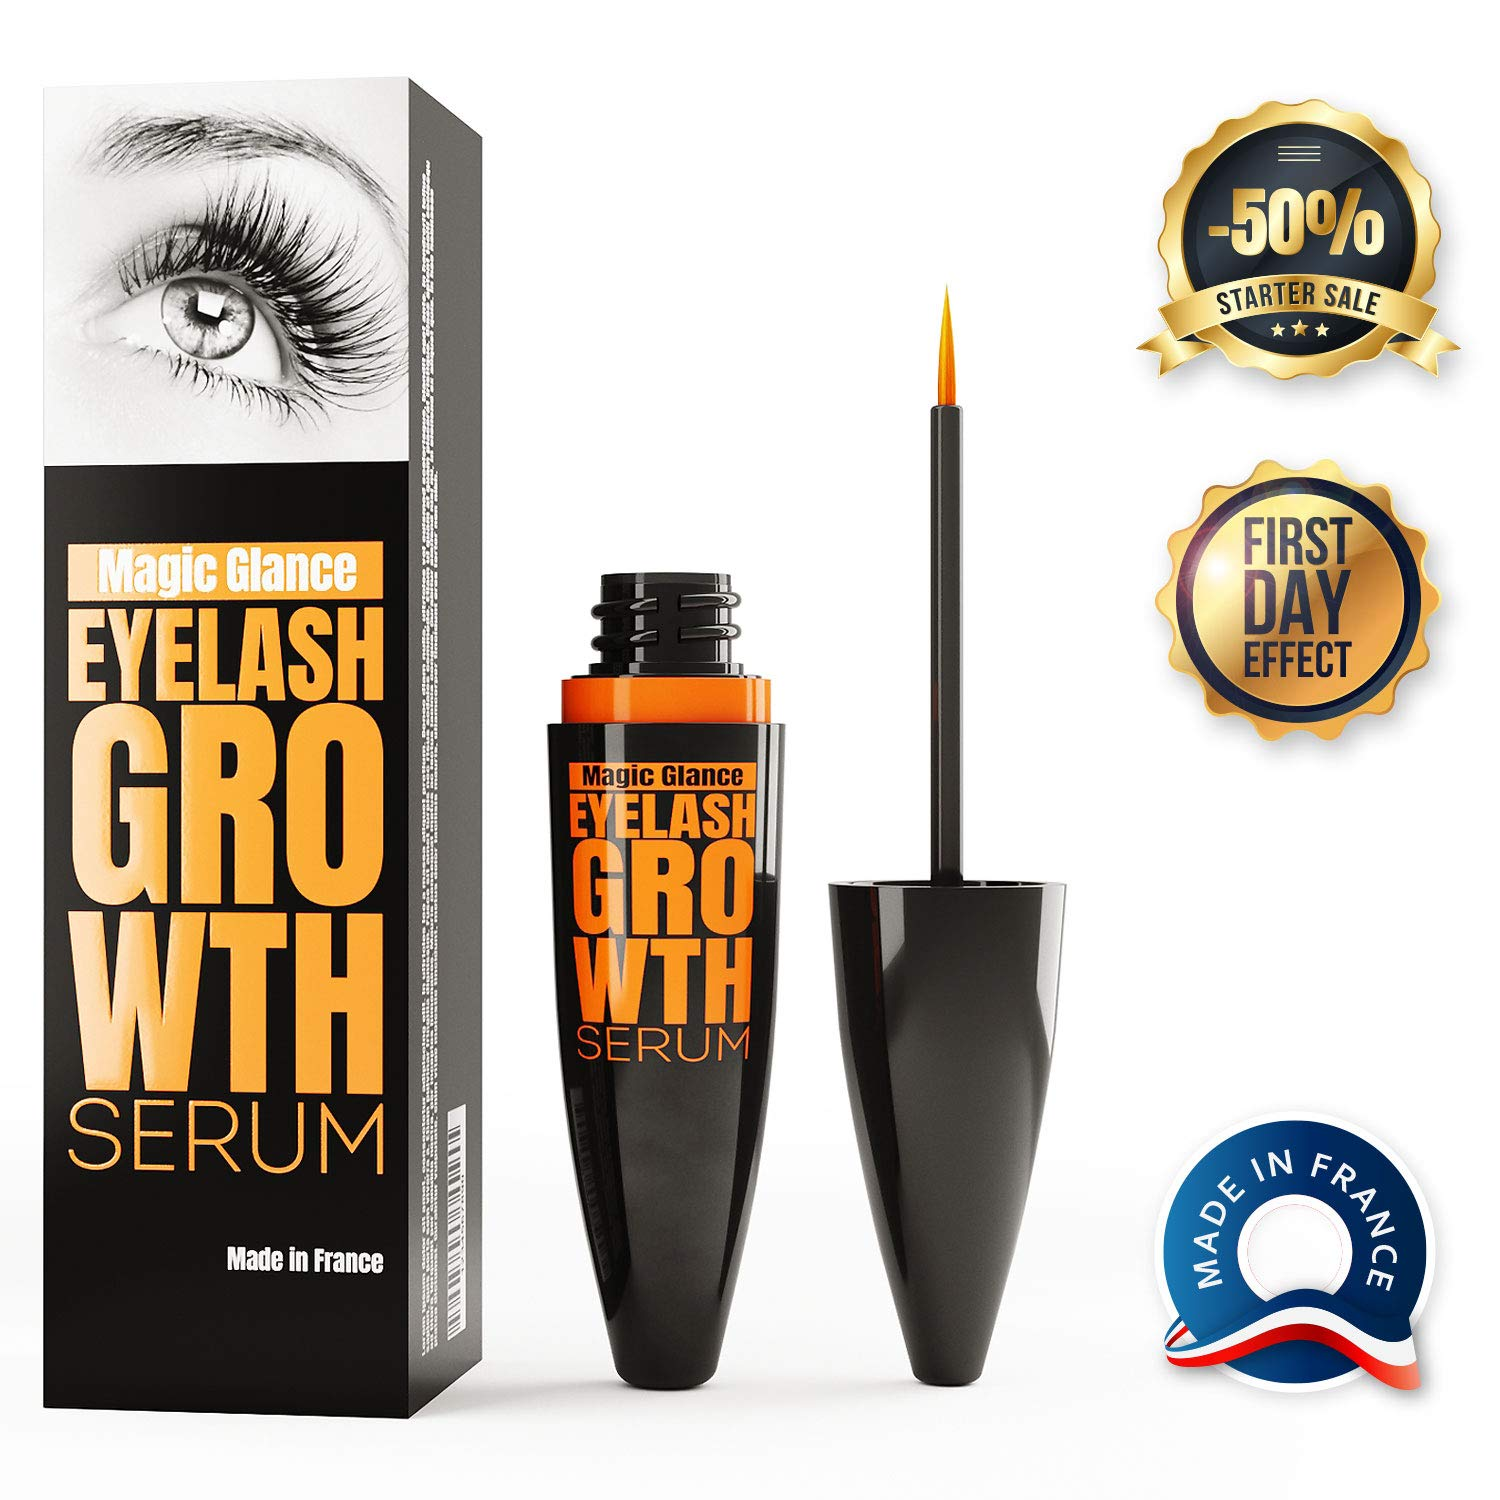 Natural Eyebrow and Eyelash Growth Serum - Boost Enhancer for Full, Long, Thick & Luscious Lashes - Fast Results in 14 Days - Rapid Lash Growth, Healing, Treatment & Care Mediatic Labs